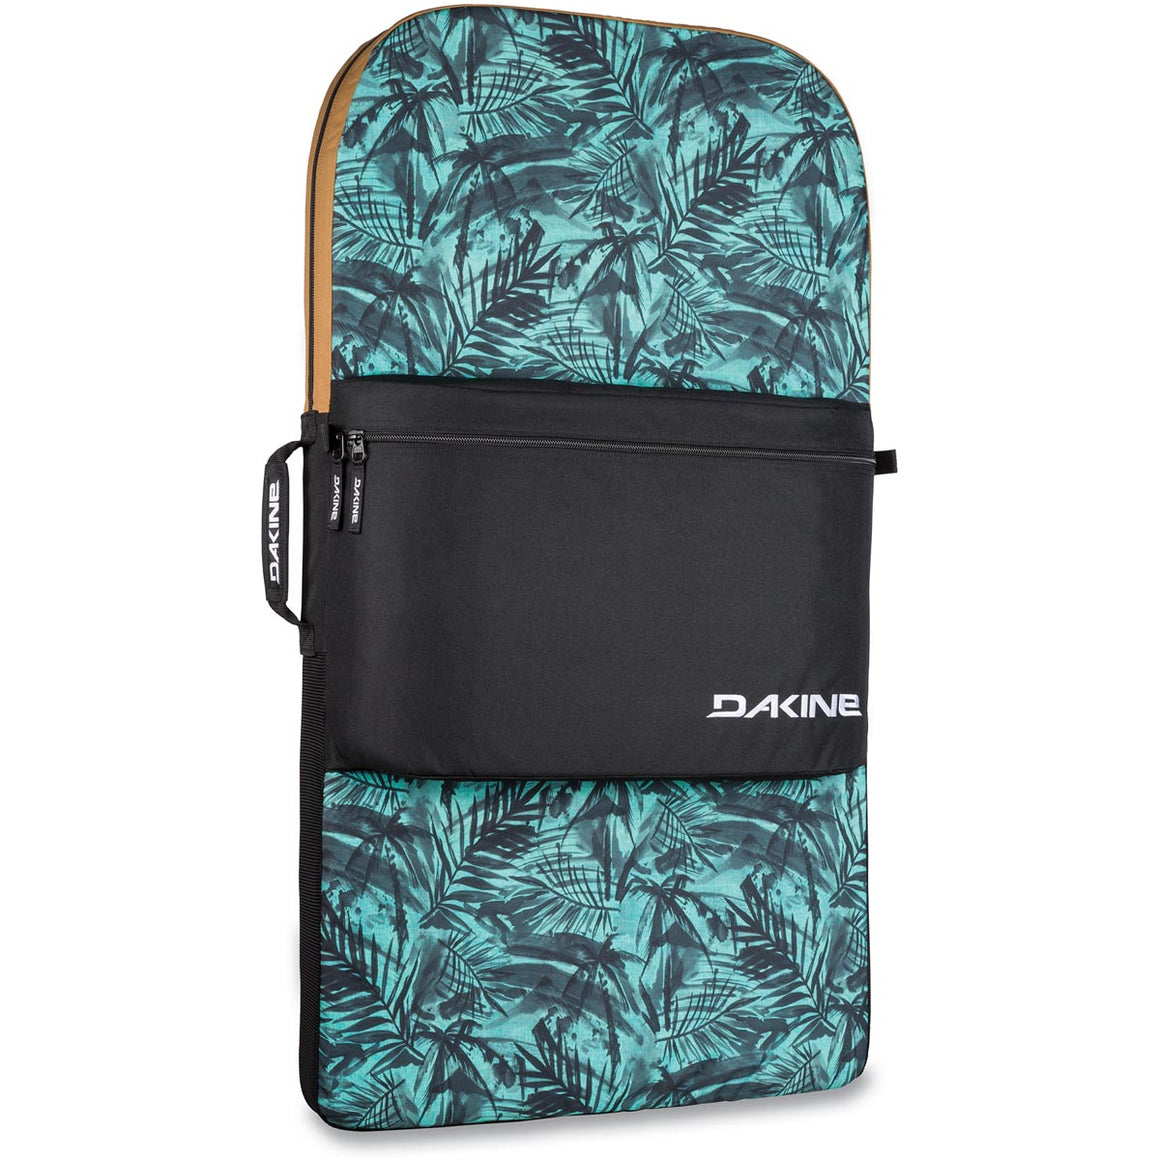 Dakine - Deluxe Bodyboard Backpack Painted Palm